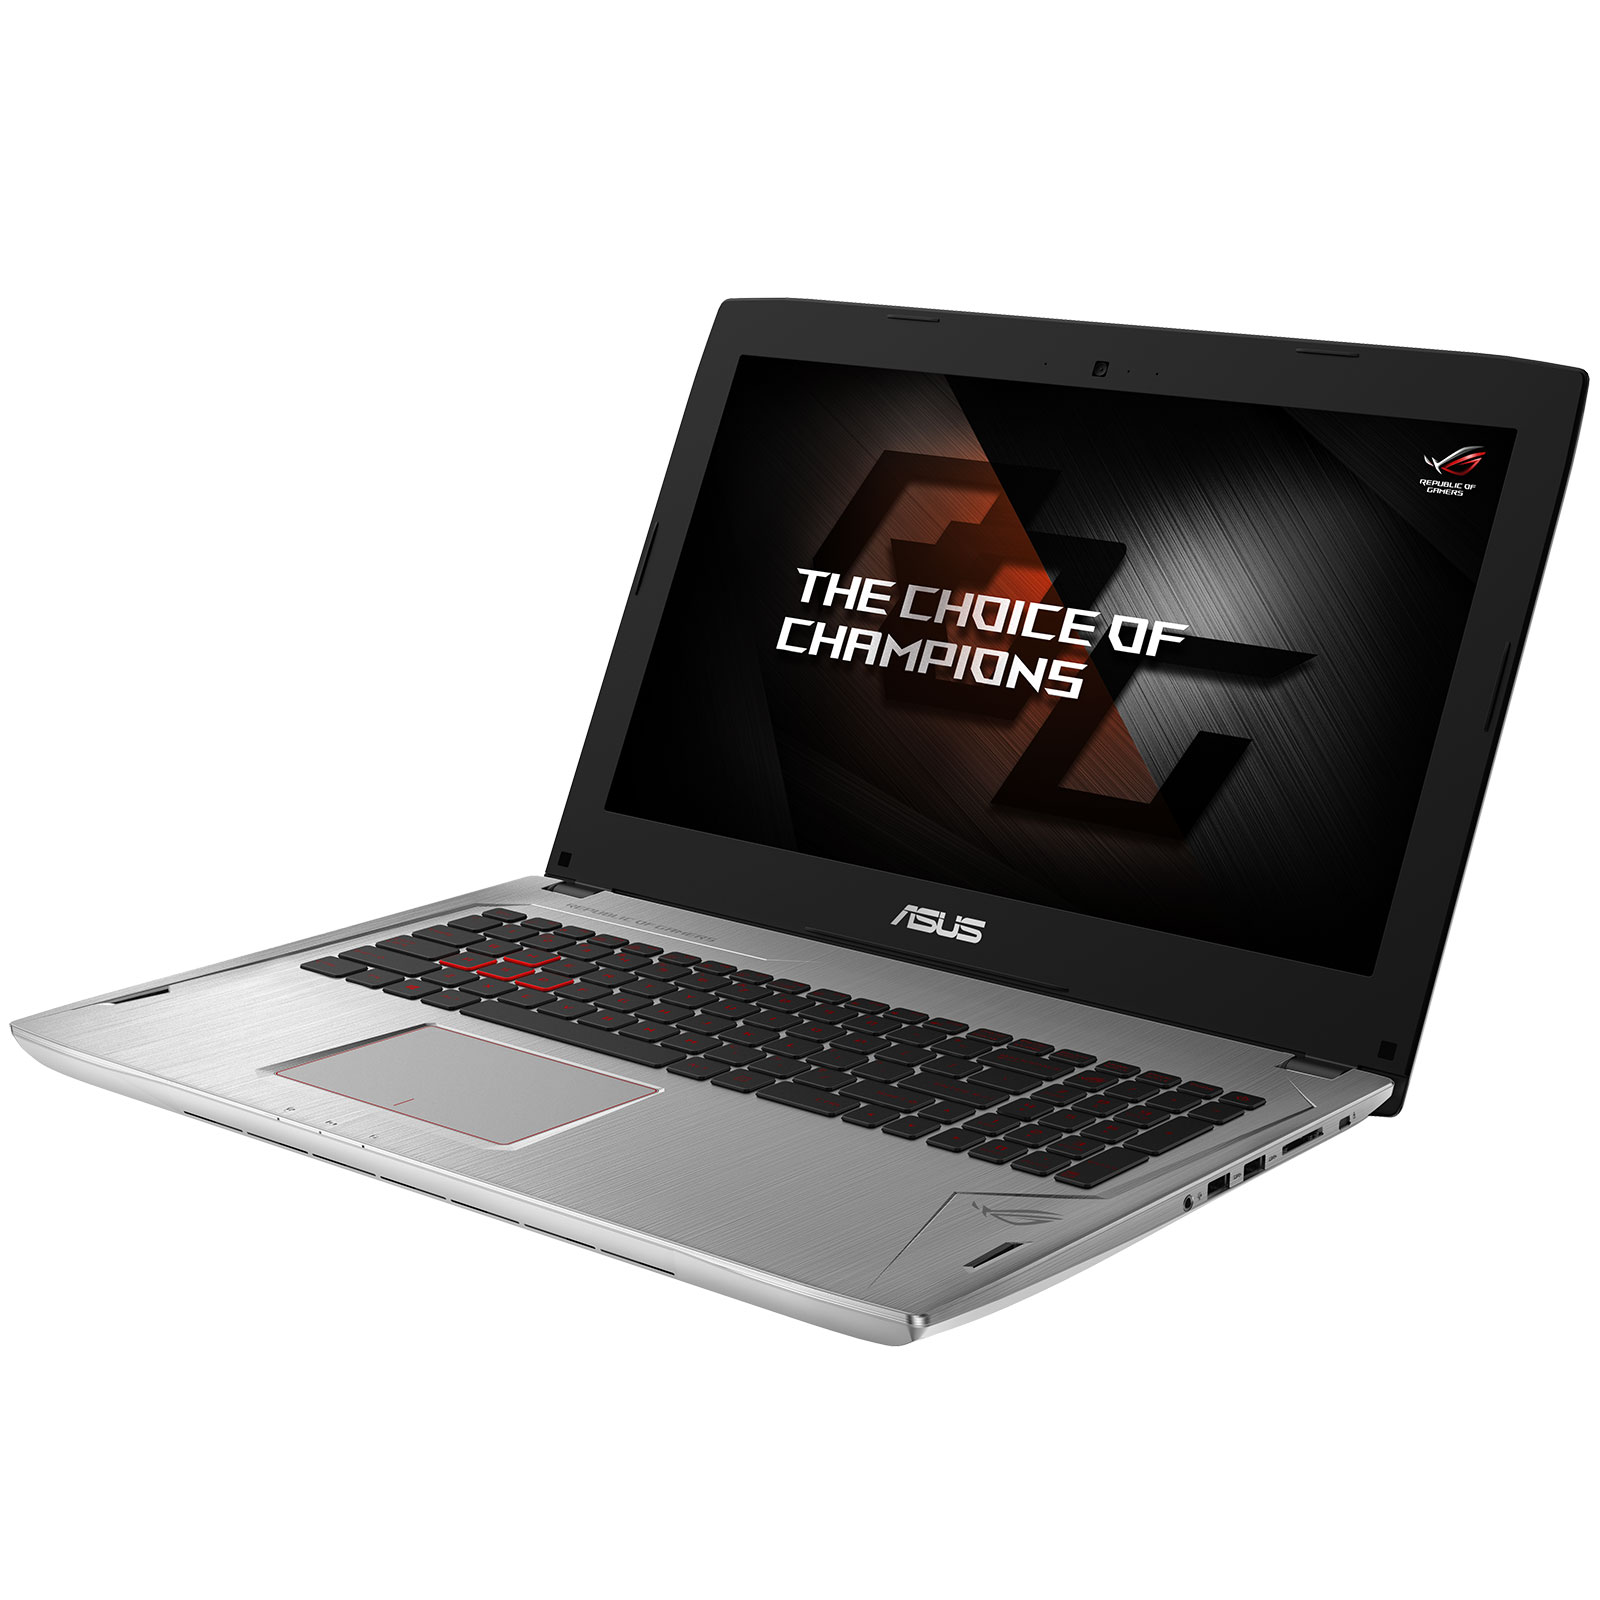 "PC portable ASUS ROG STRIX GL502VM-FY534T Intel Core i7-7700HQ 8 Go SSD 128 Go + HDD 1 To 15.6"" LED Full HD G-SYNC NVIDIA GeForce GTX 1060 3 Go Wi-Fi AC/Bluetooth Webcam Windows 10 Famille 64 bits (garantie constructeur 2 ans)"